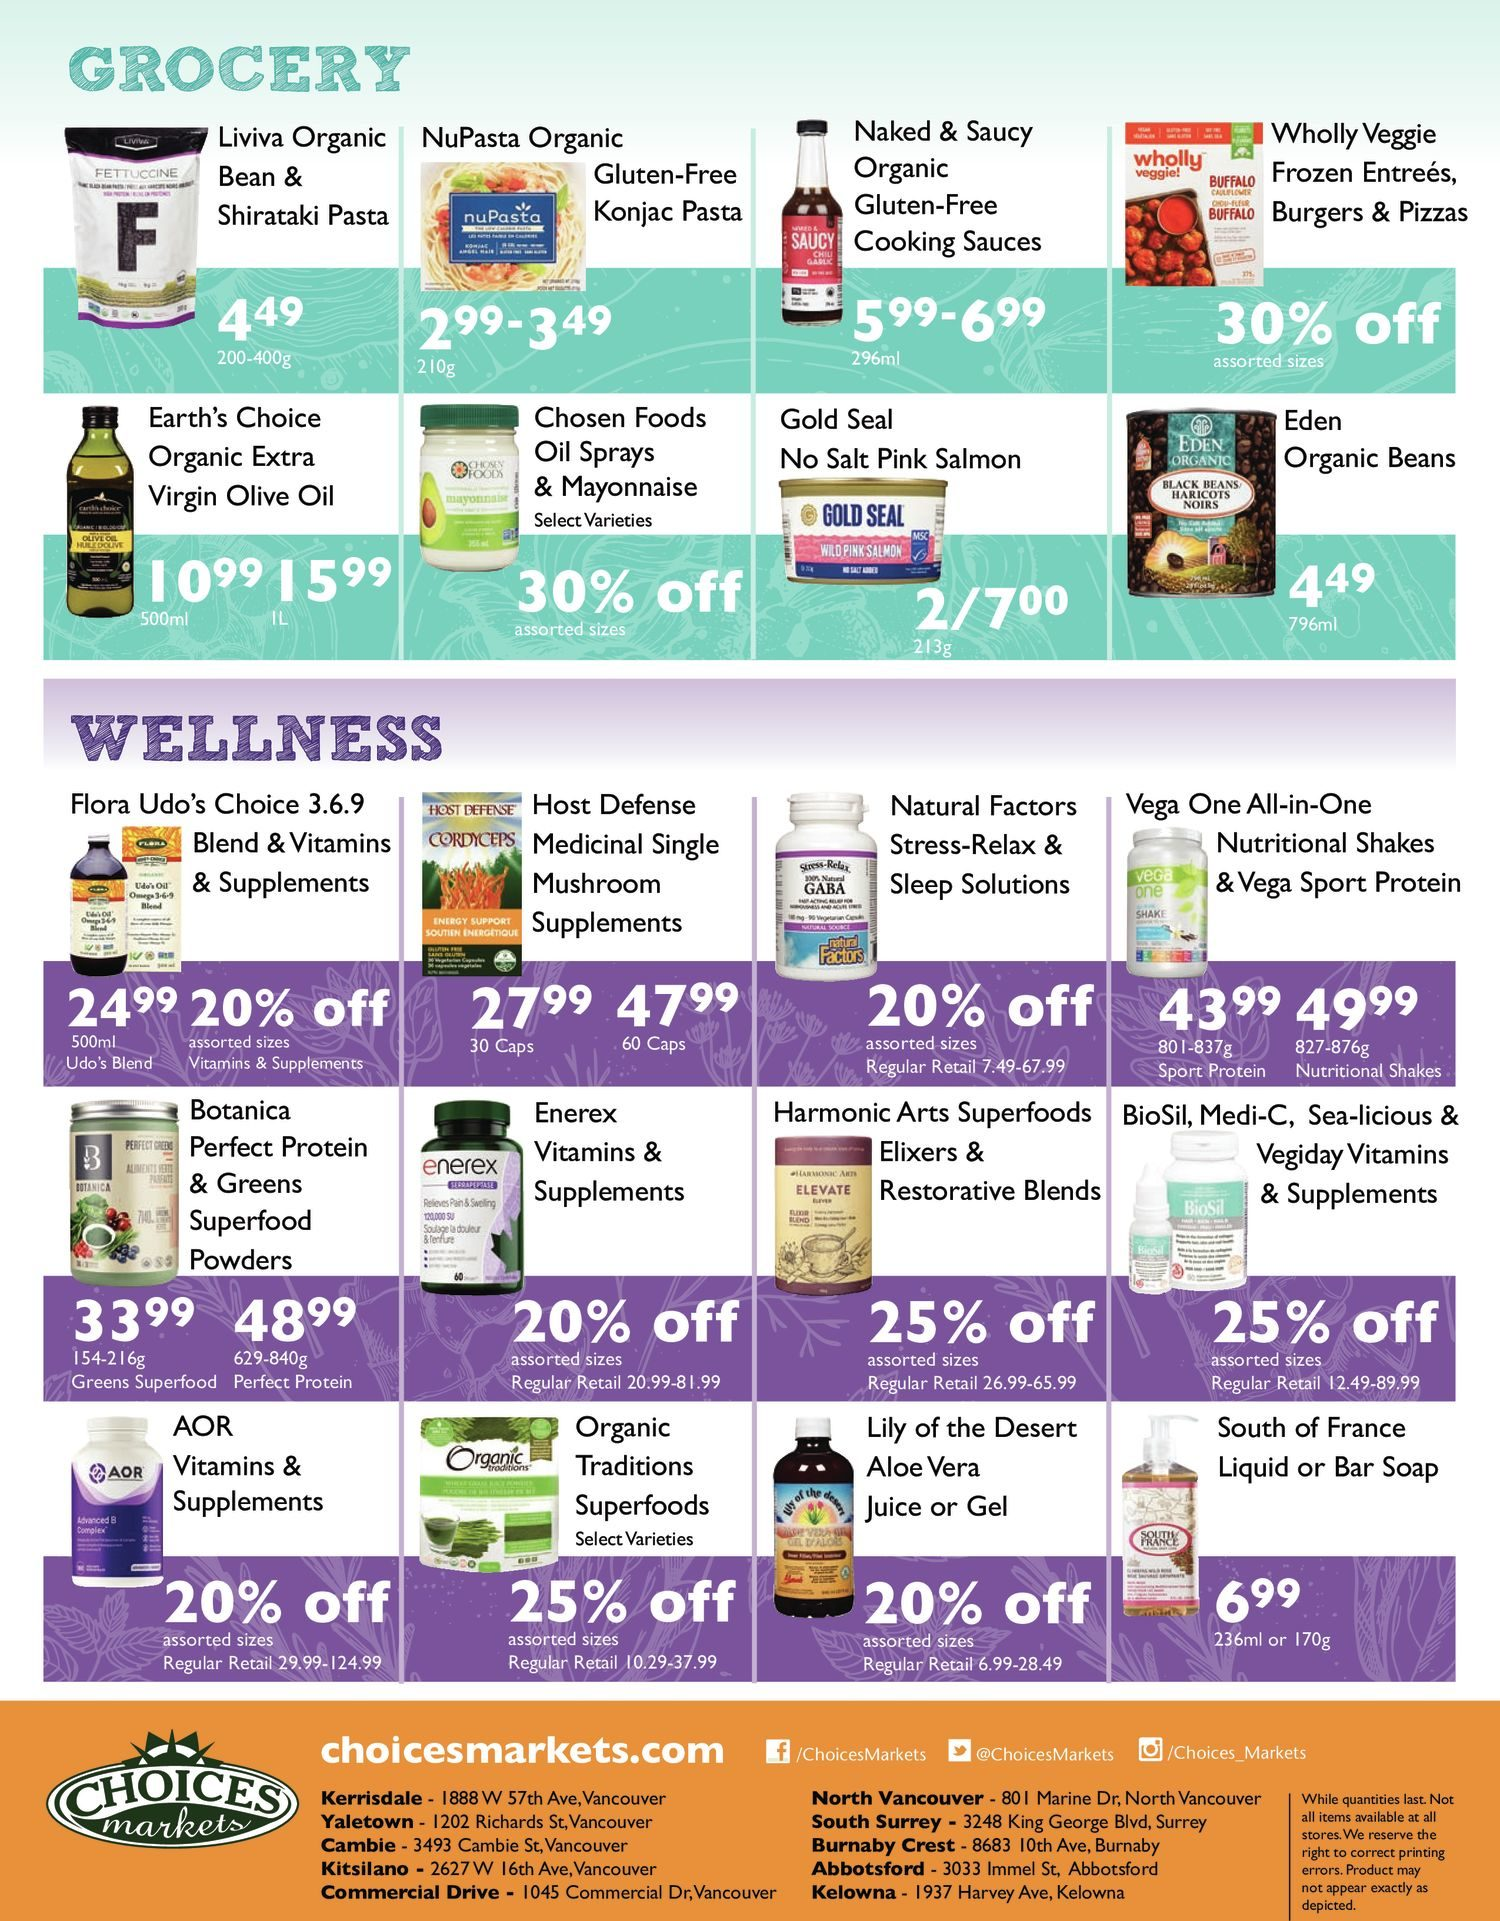 Choices Markets - Weekly Flyer Specials - Page 6